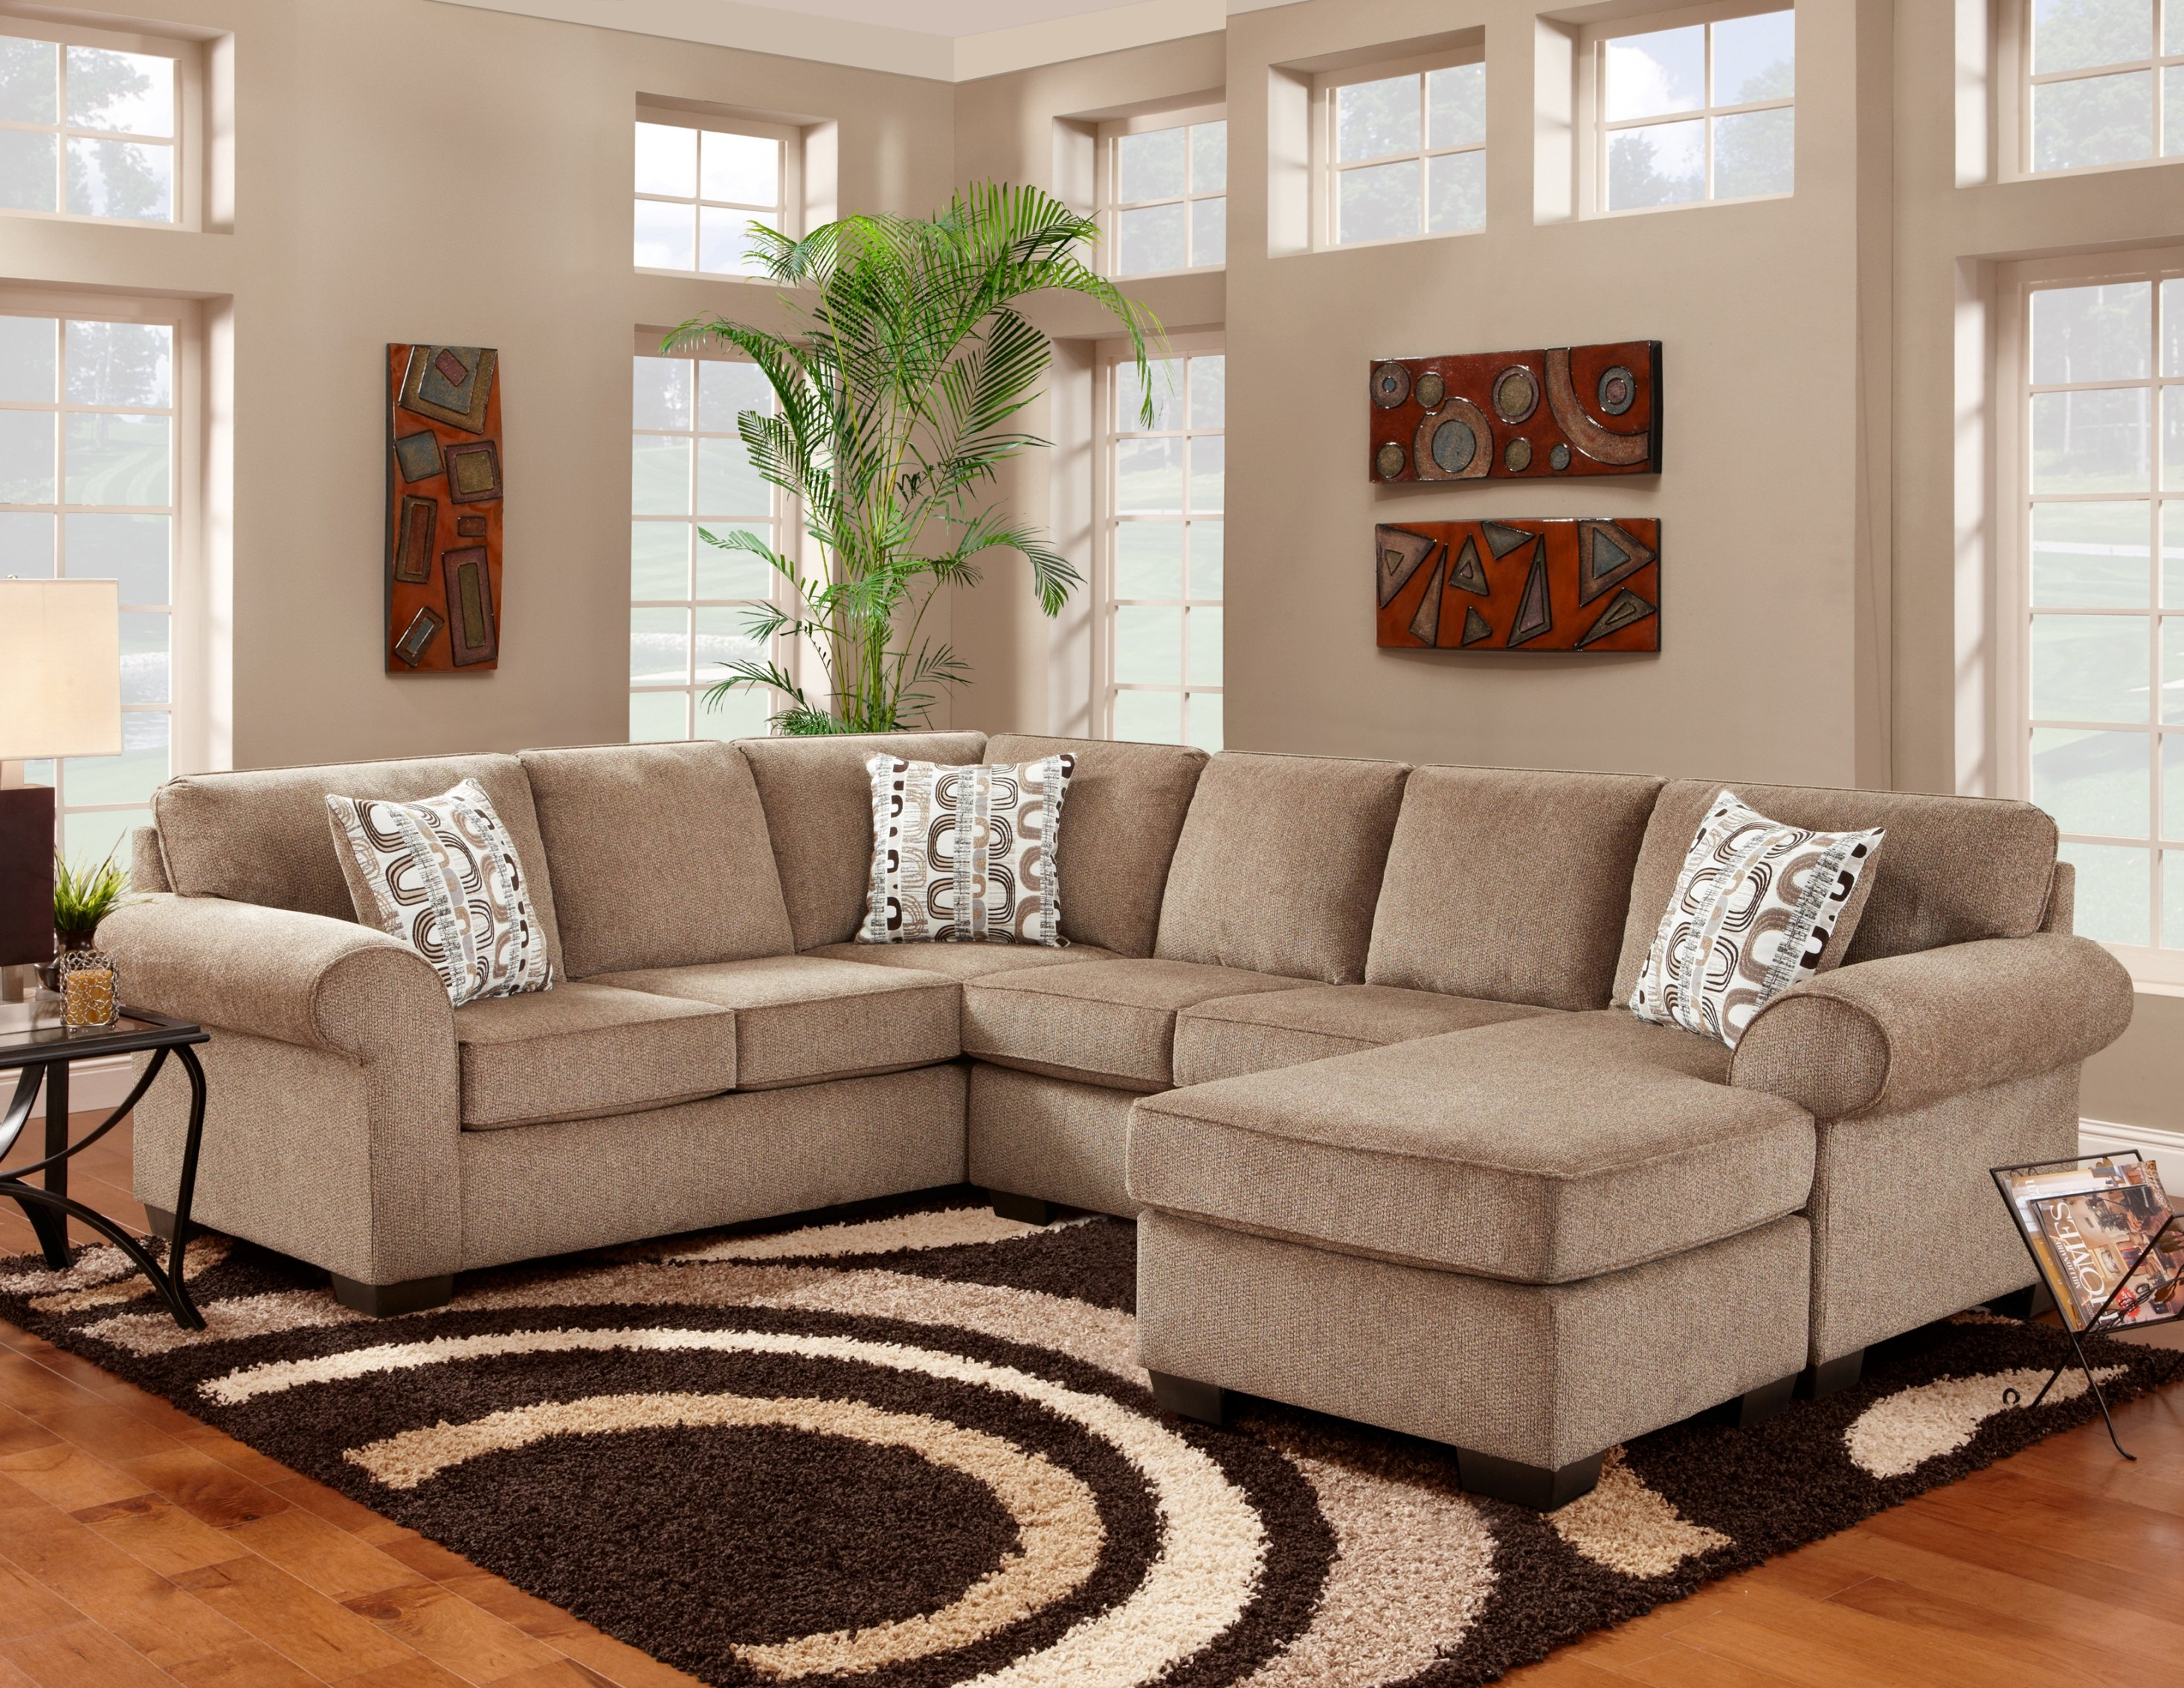 Taneytown Reversible Sectional With Regard To Current Rarick 5 Piece Solid Wood Dining Sets (Set Of 5) (Image 19 of 20)